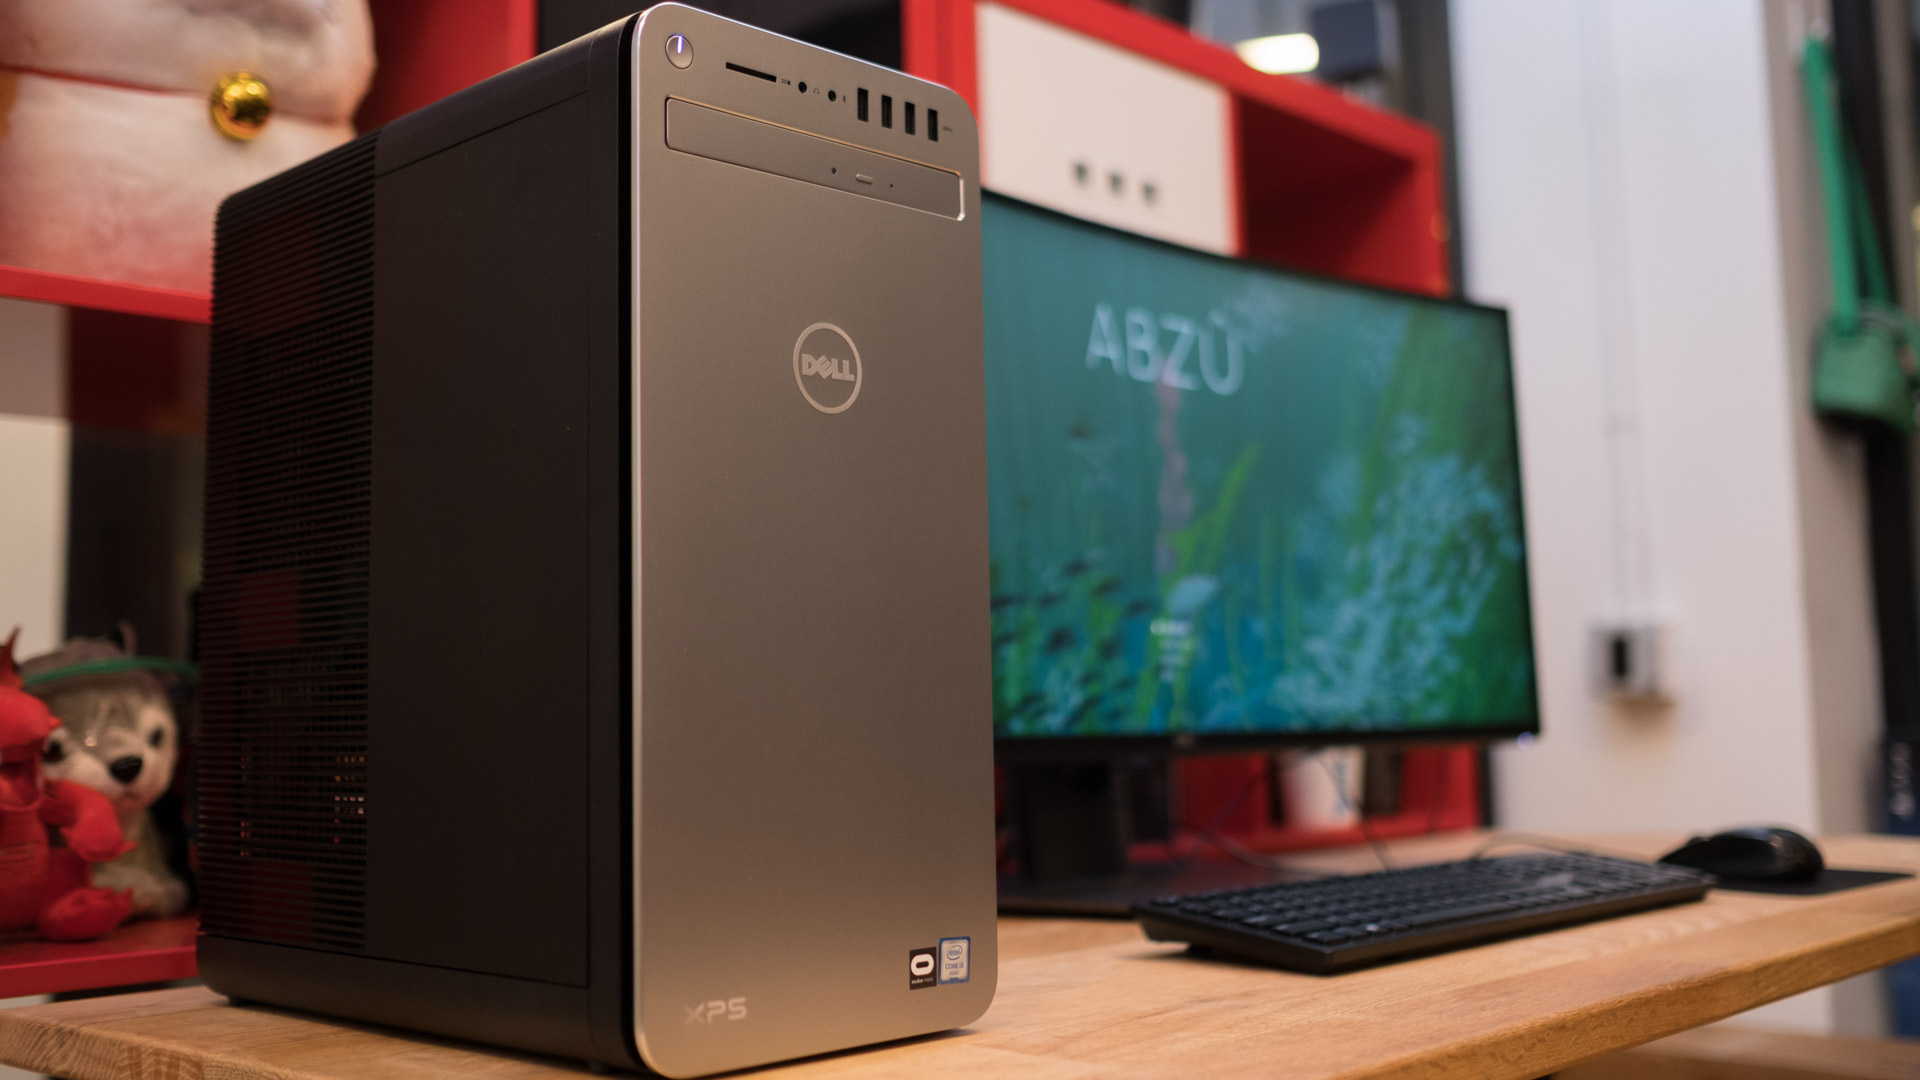 Best computer 2018: the best PCs we've tested